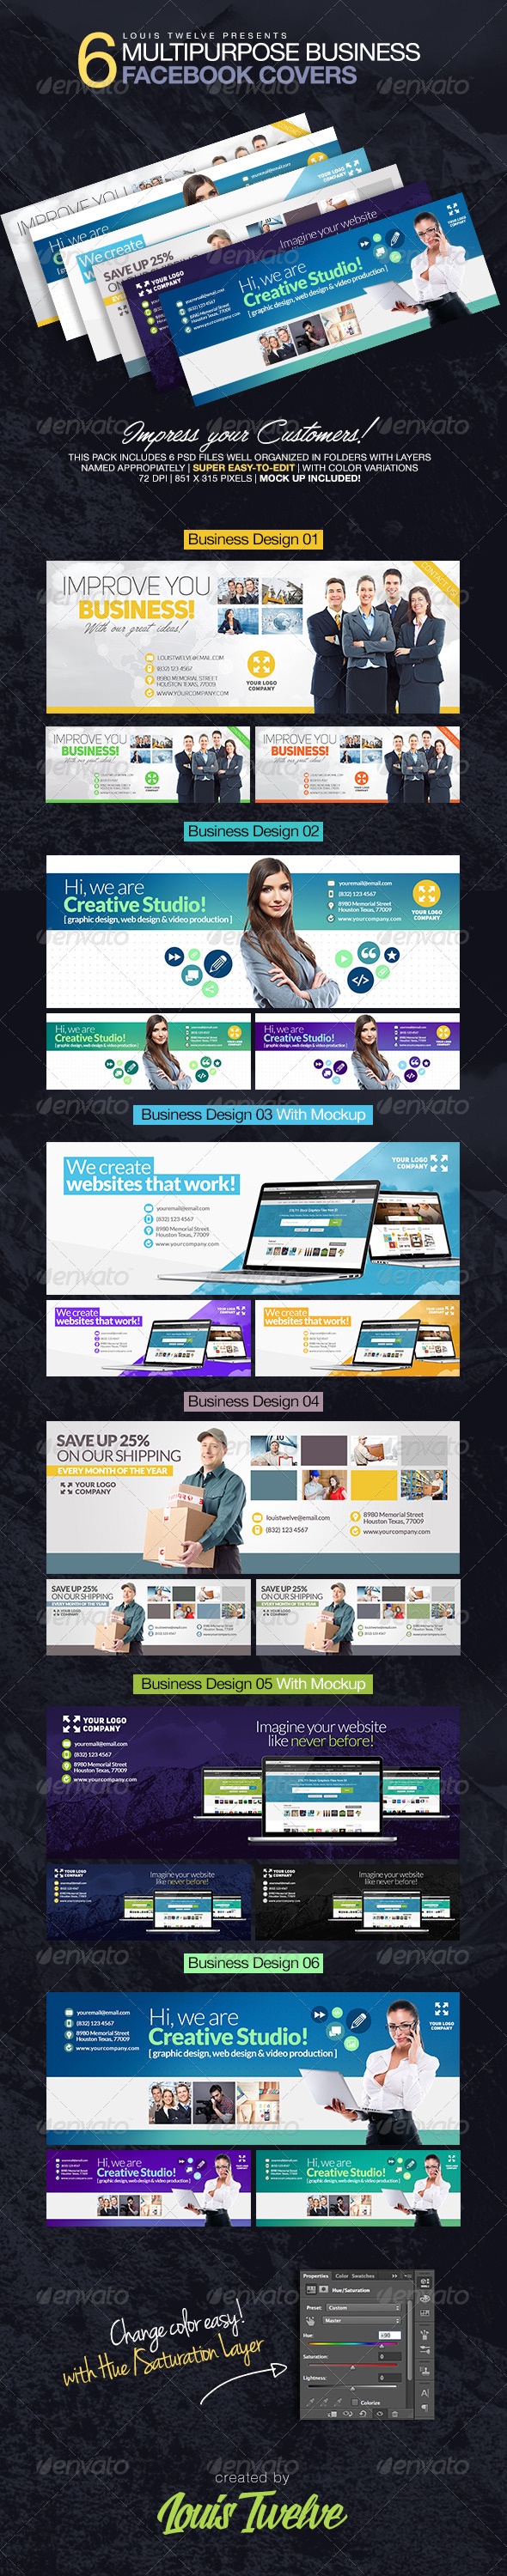 GraphicRiver 6 Multipurpose Business Facebook Covers 8619269